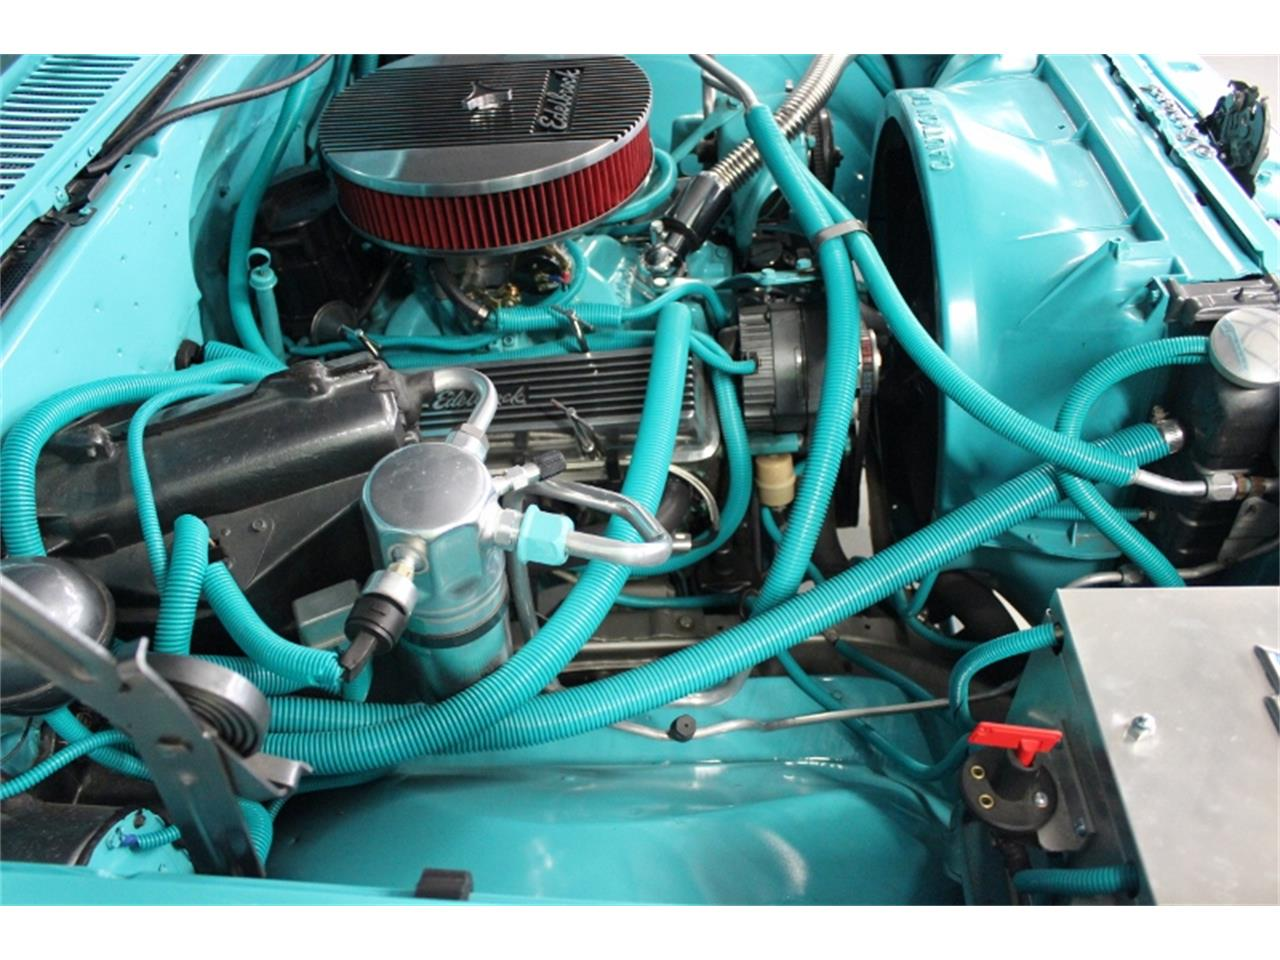 Large Picture of 1981 Chevrolet C10 located in Lillington North Carolina - $27,000.00 Offered by East Coast Classic Cars - MDDW